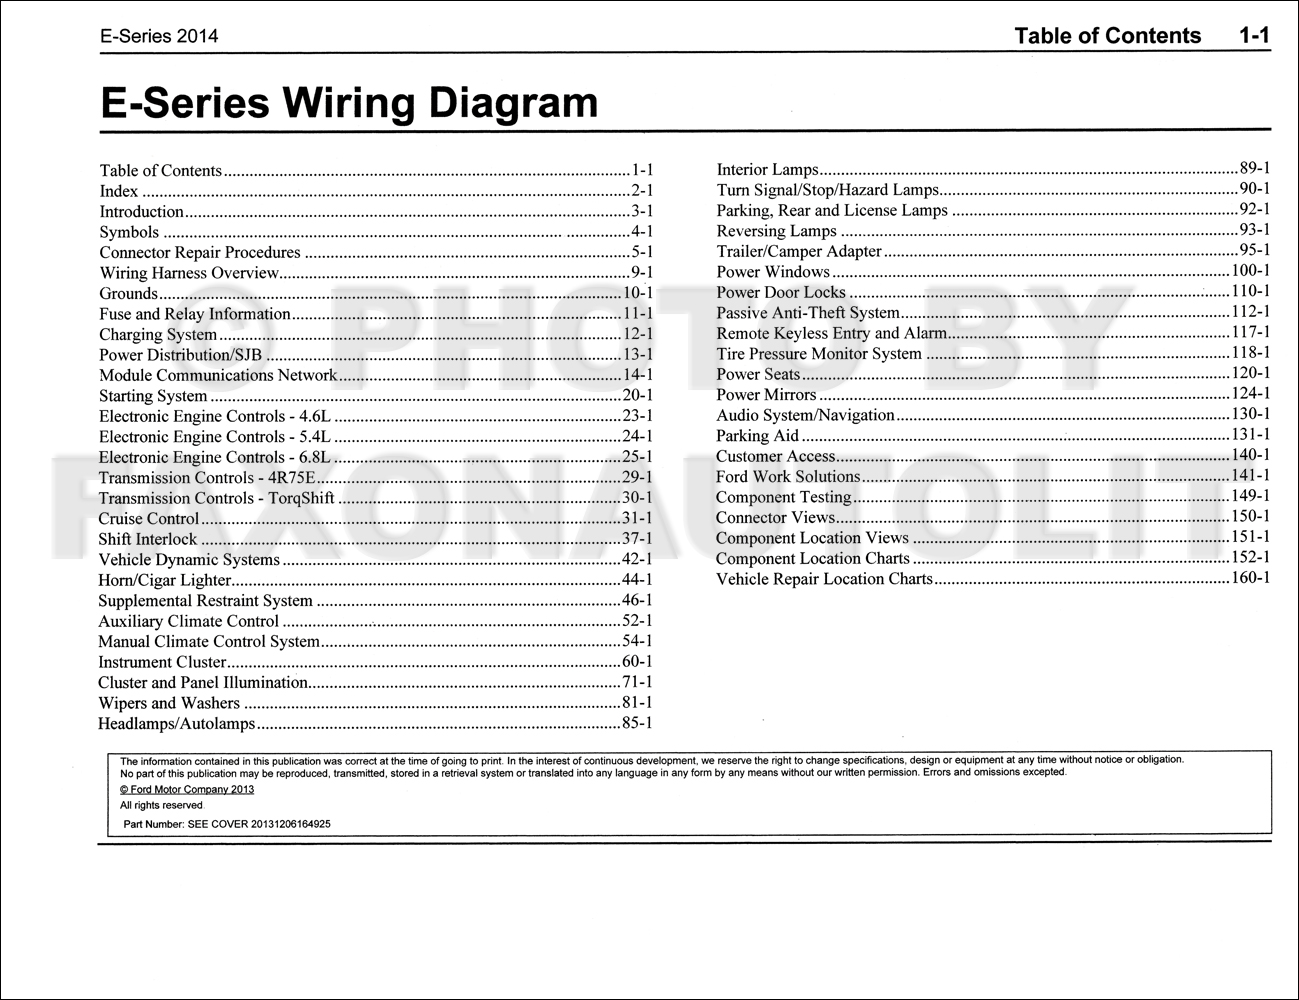 95 Ford E 150 Fuse Diagram Wiring Library 2013 Corolla 2014 Econoline Manual Original Van E150 E250 E350 E450